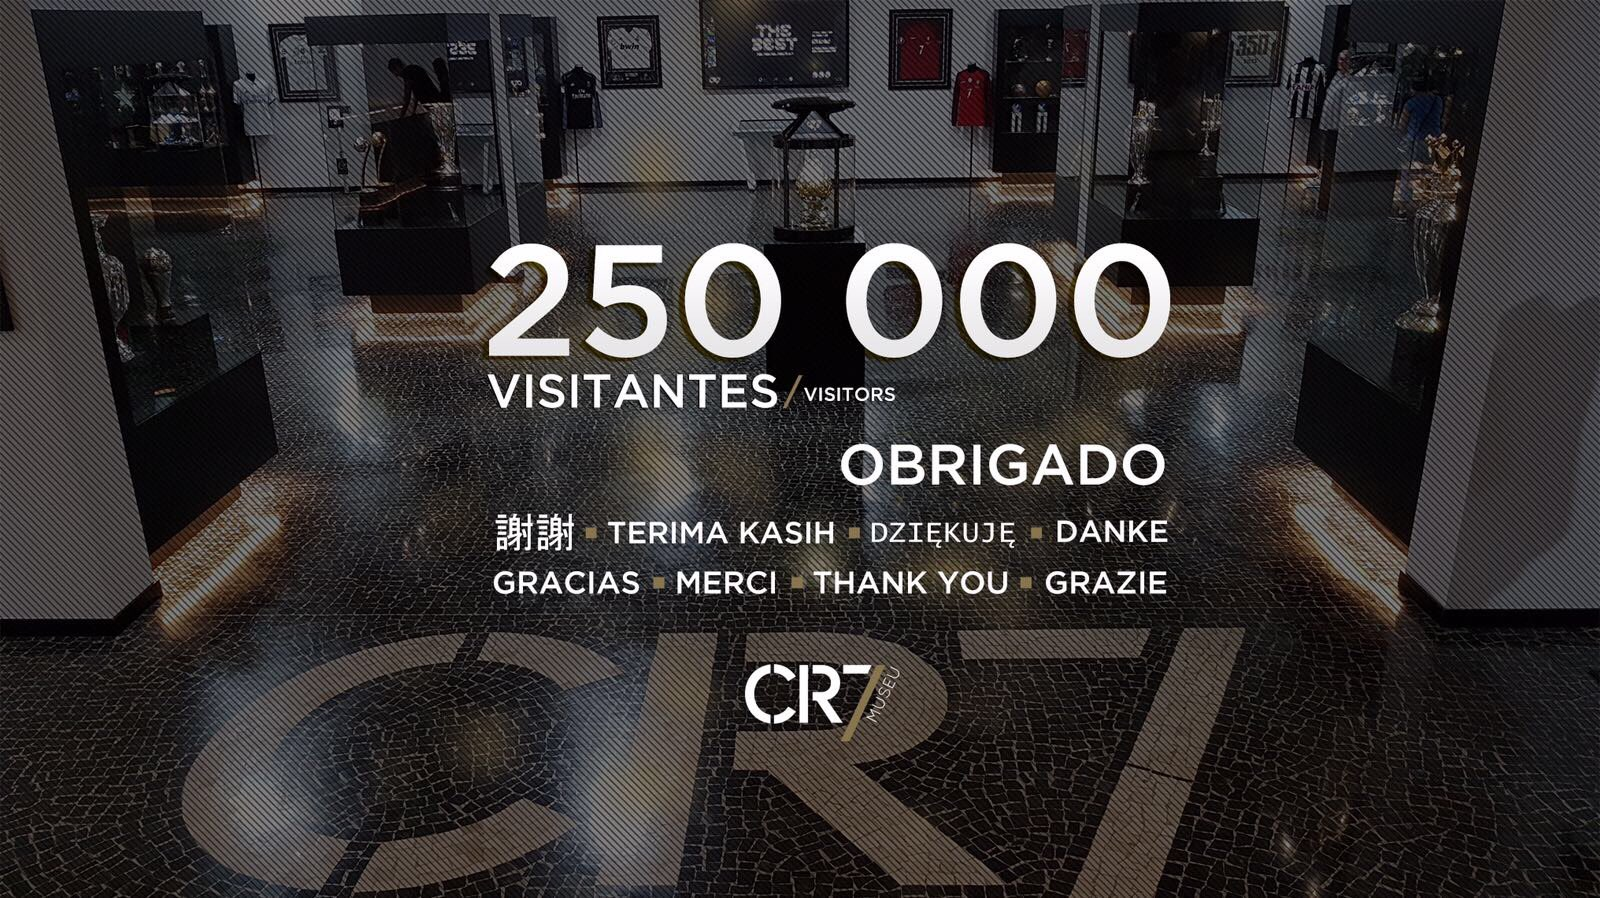 We already had 250 000 visitors in my @CR7Museu !! Thank you all!���� https://t.co/8Q2pLAAQhs